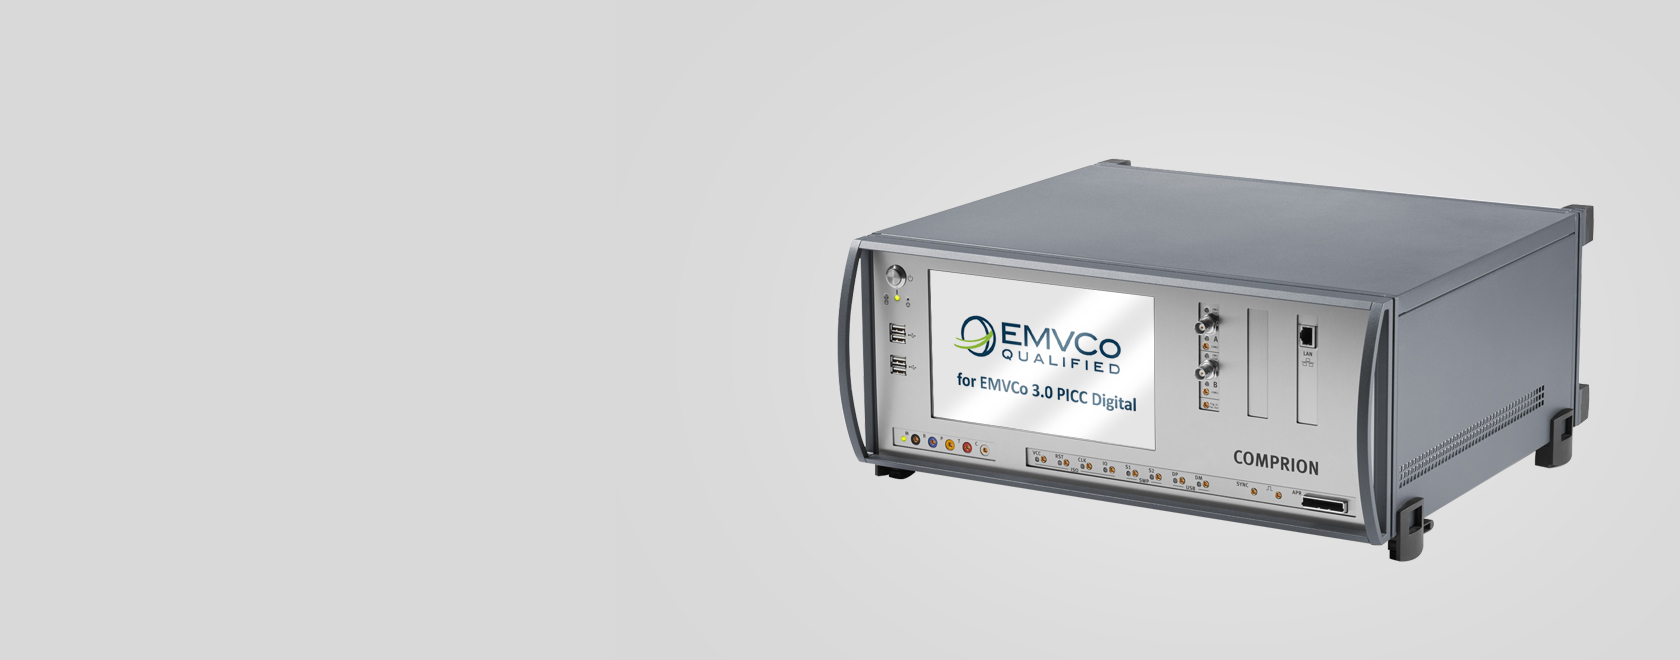 COMPRION EMVCo PICC Digital Test Solution Qualified for EMVCo 3.0